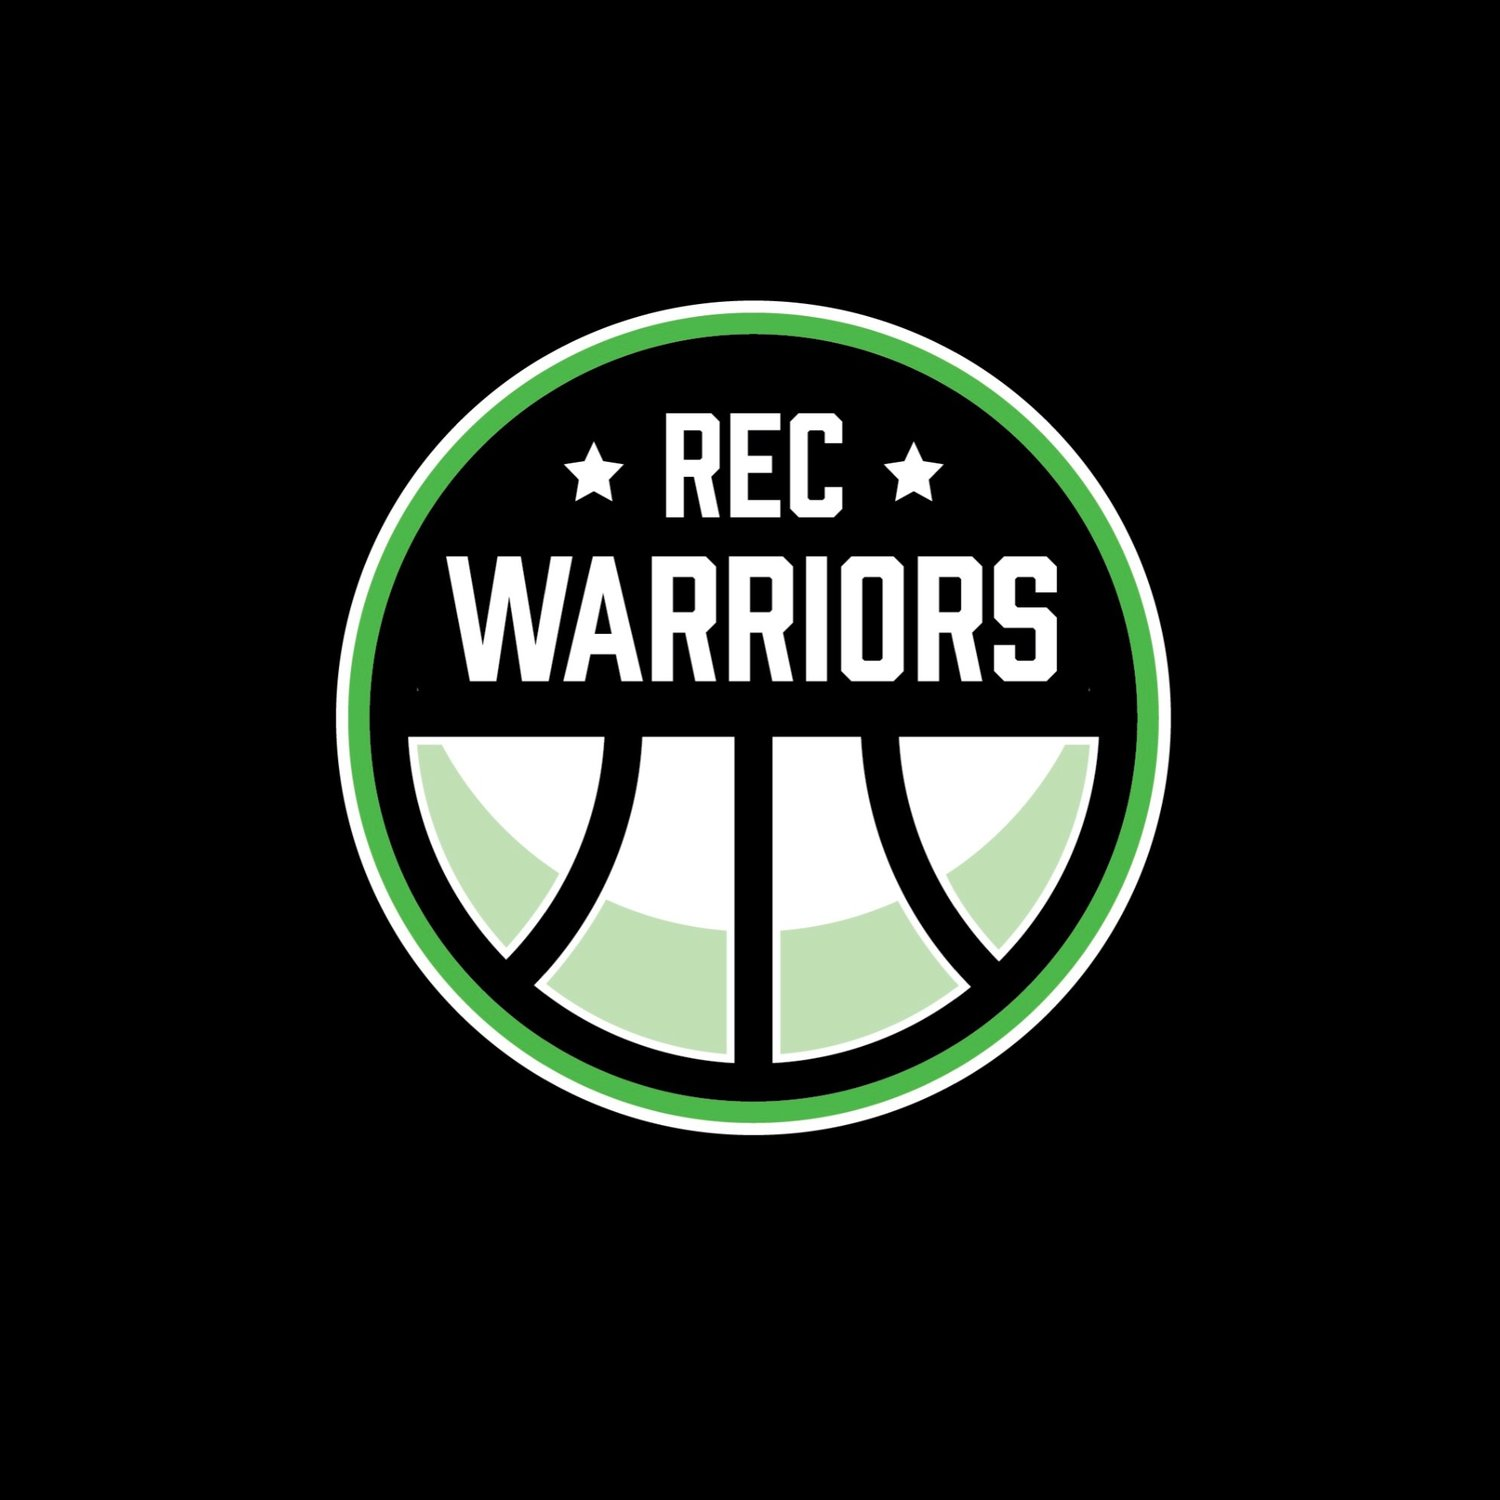 REC Teams - (Beginner Skill)Grades 3rd-5thTRYOUTS: NONE1st come, 1st serve sign-ups